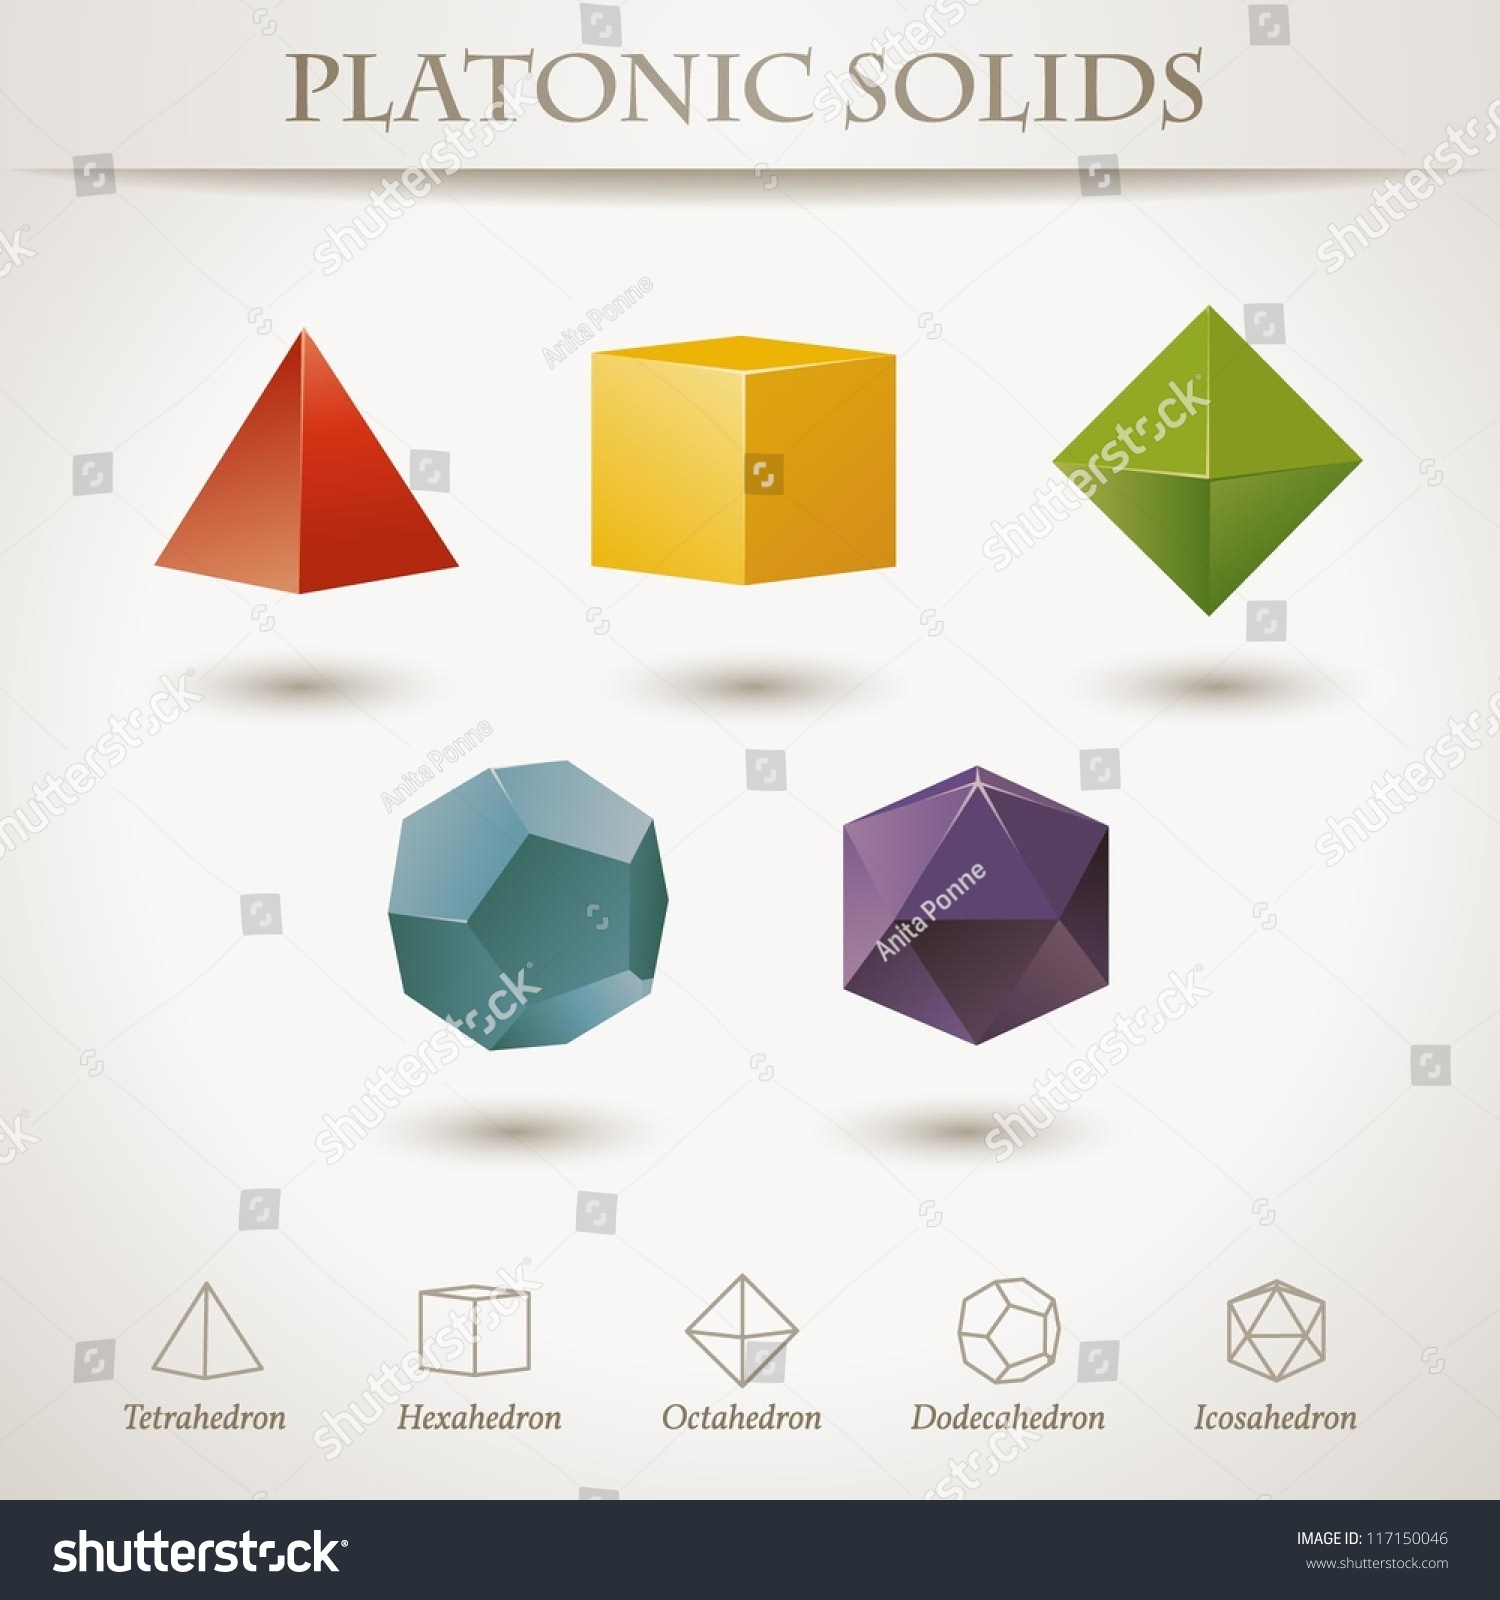 Colorful Set Geometric Shapes Platonic Solids Stock Vector Royalty